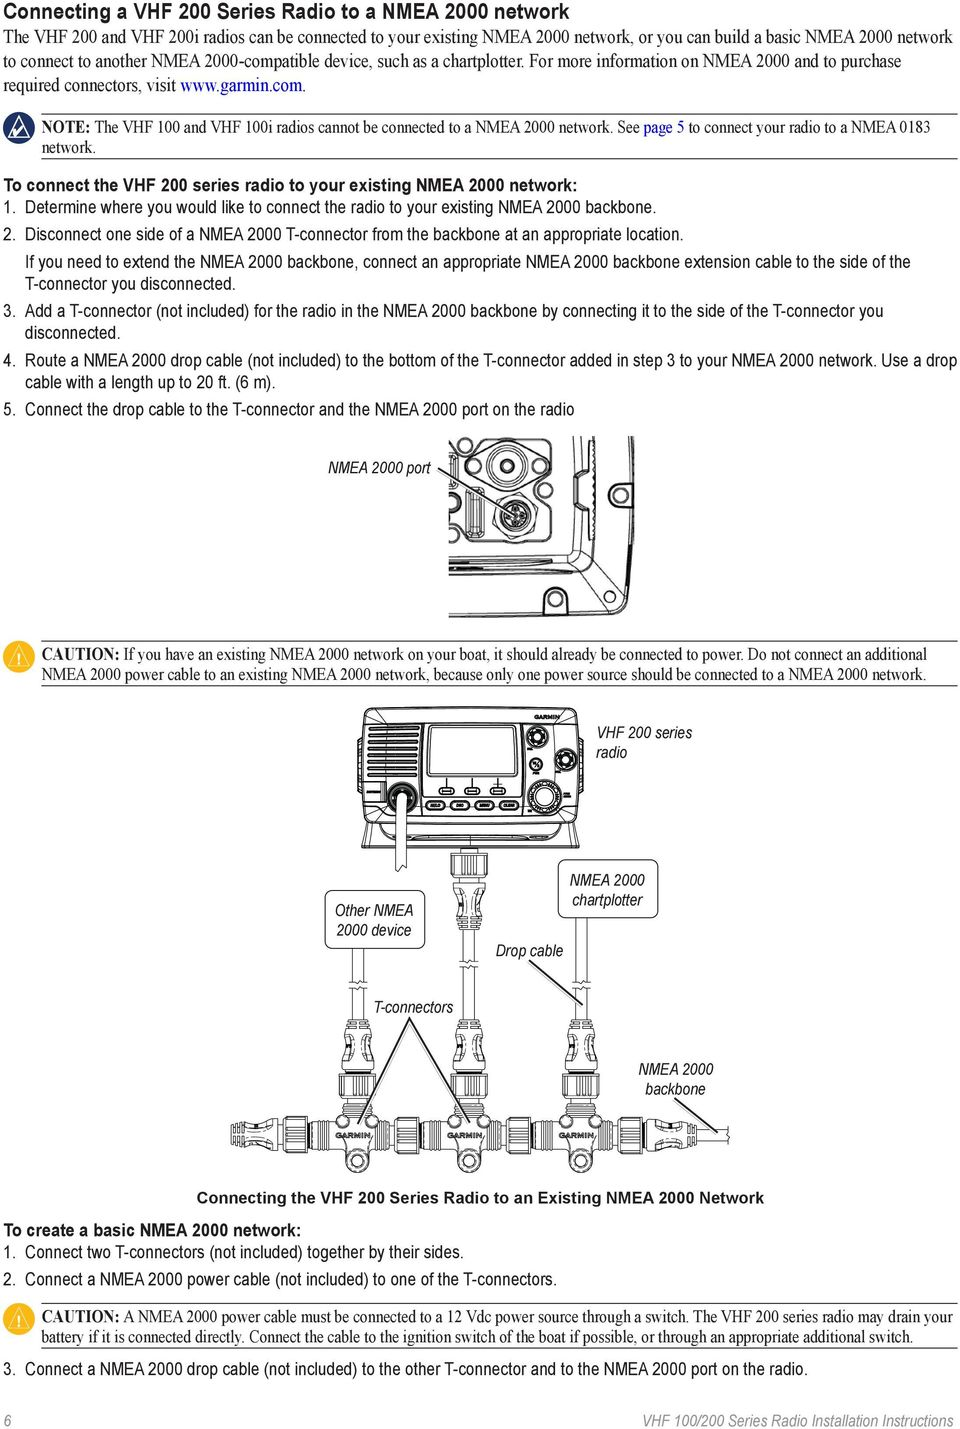 Vhf 100 200 Series Radio Installation Instructions Pdf Nmea 2000 T Connector Wiring Diagram See Page 5 To Connect Your A 0183 Network The